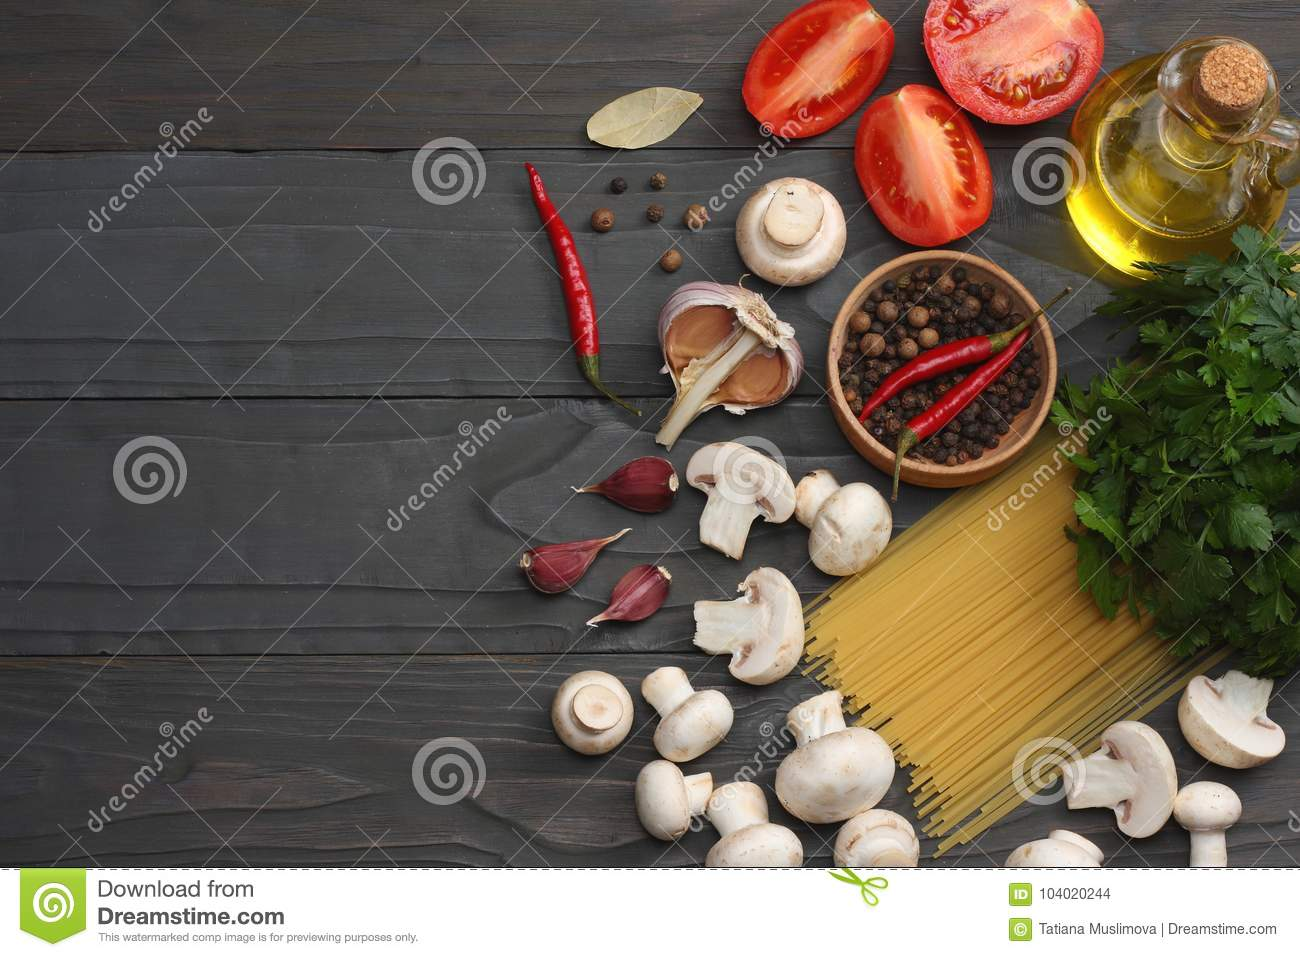 Italian food background, with tomatoes, parsley, spaghetti, mushrooms, oil, lemon, peppercorns on dark wooden table. Top view